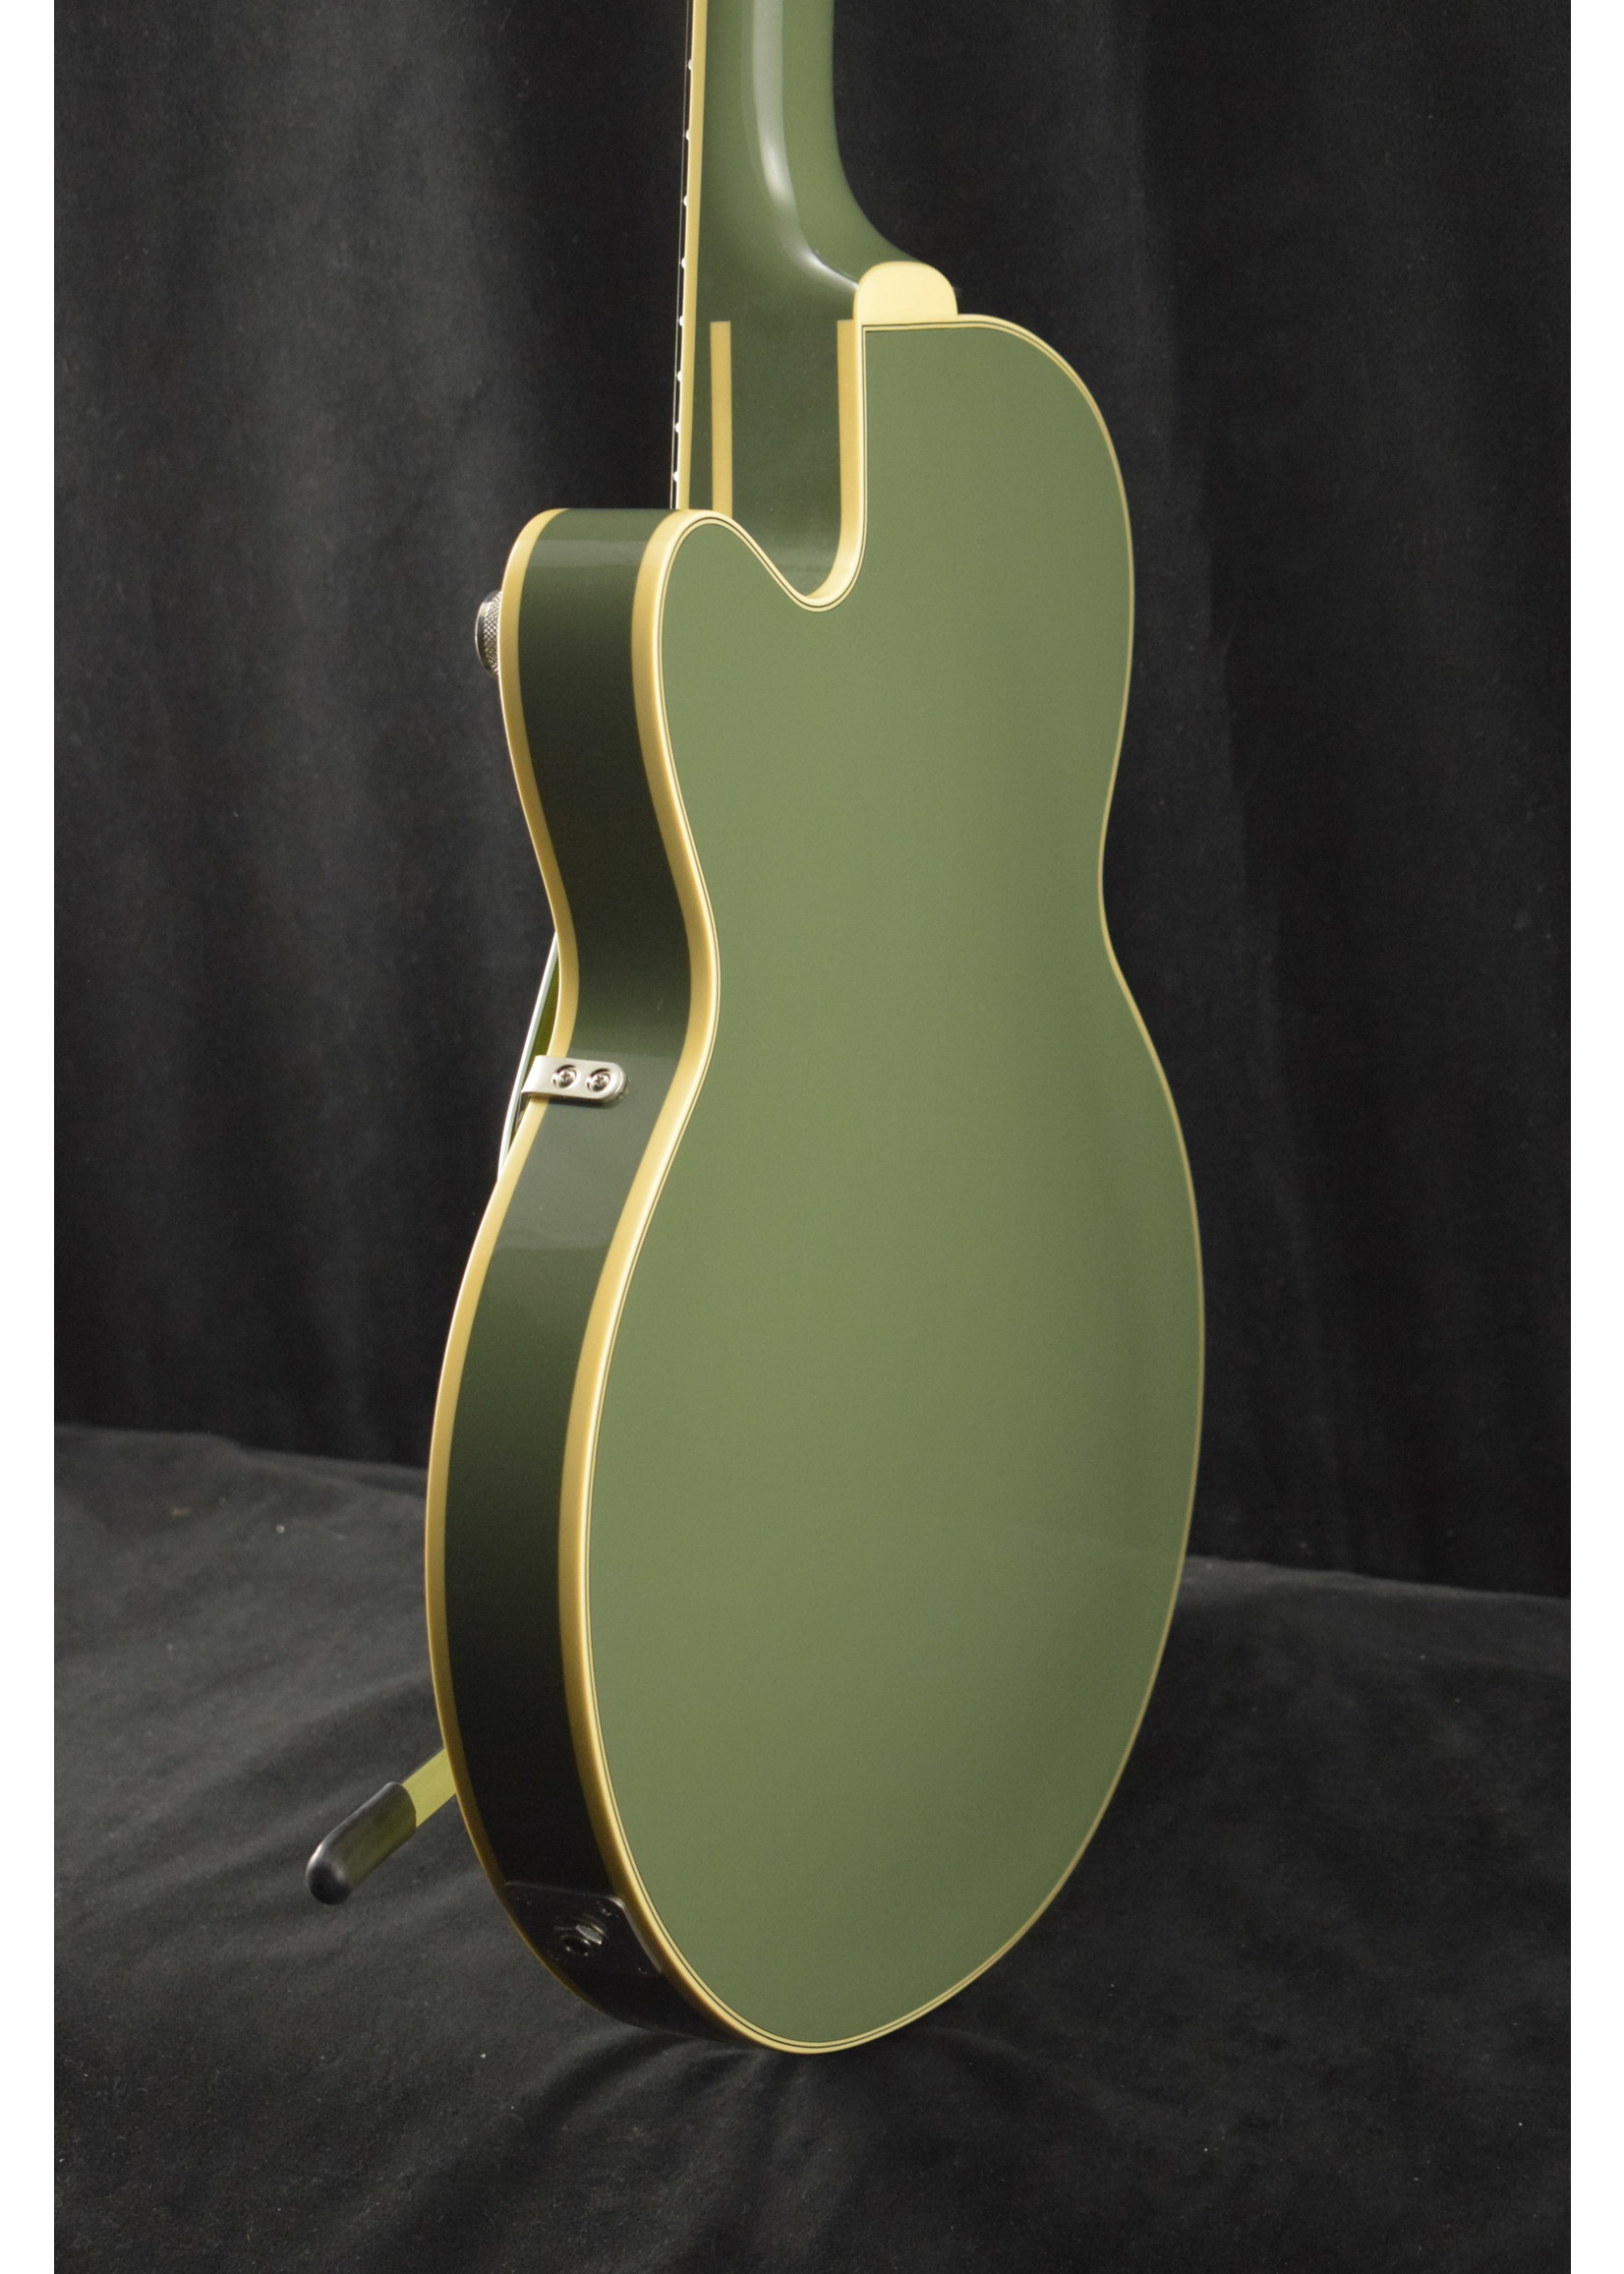 Gretsch Gretsch G6659T BroadKaster Jr. with String Through Bigsby Two-Tone Smoke Green